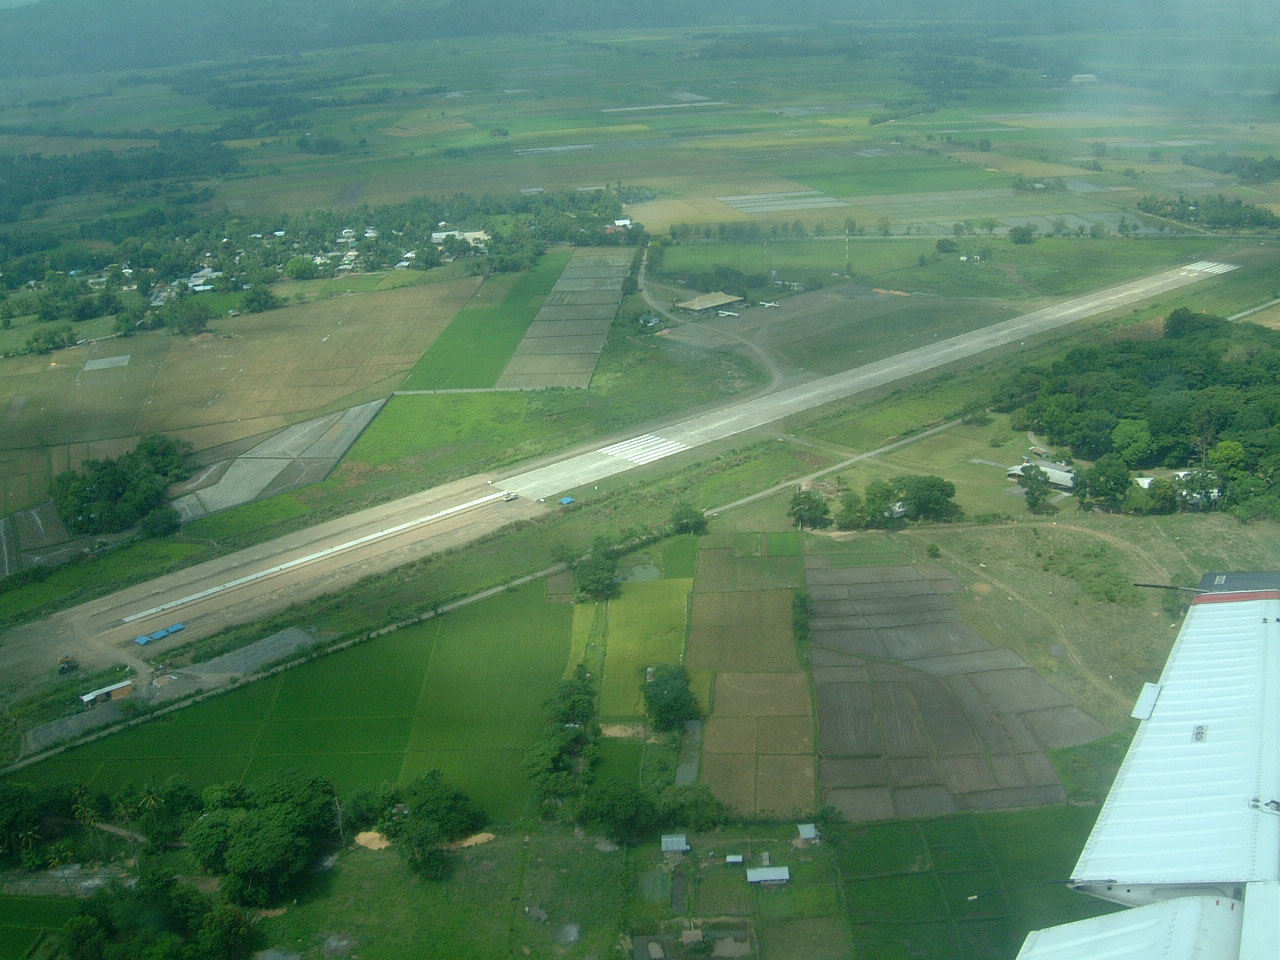 Bagabag Philippines  city pictures gallery : Philippine Airports Luzon Bagabag Airport 200303 01